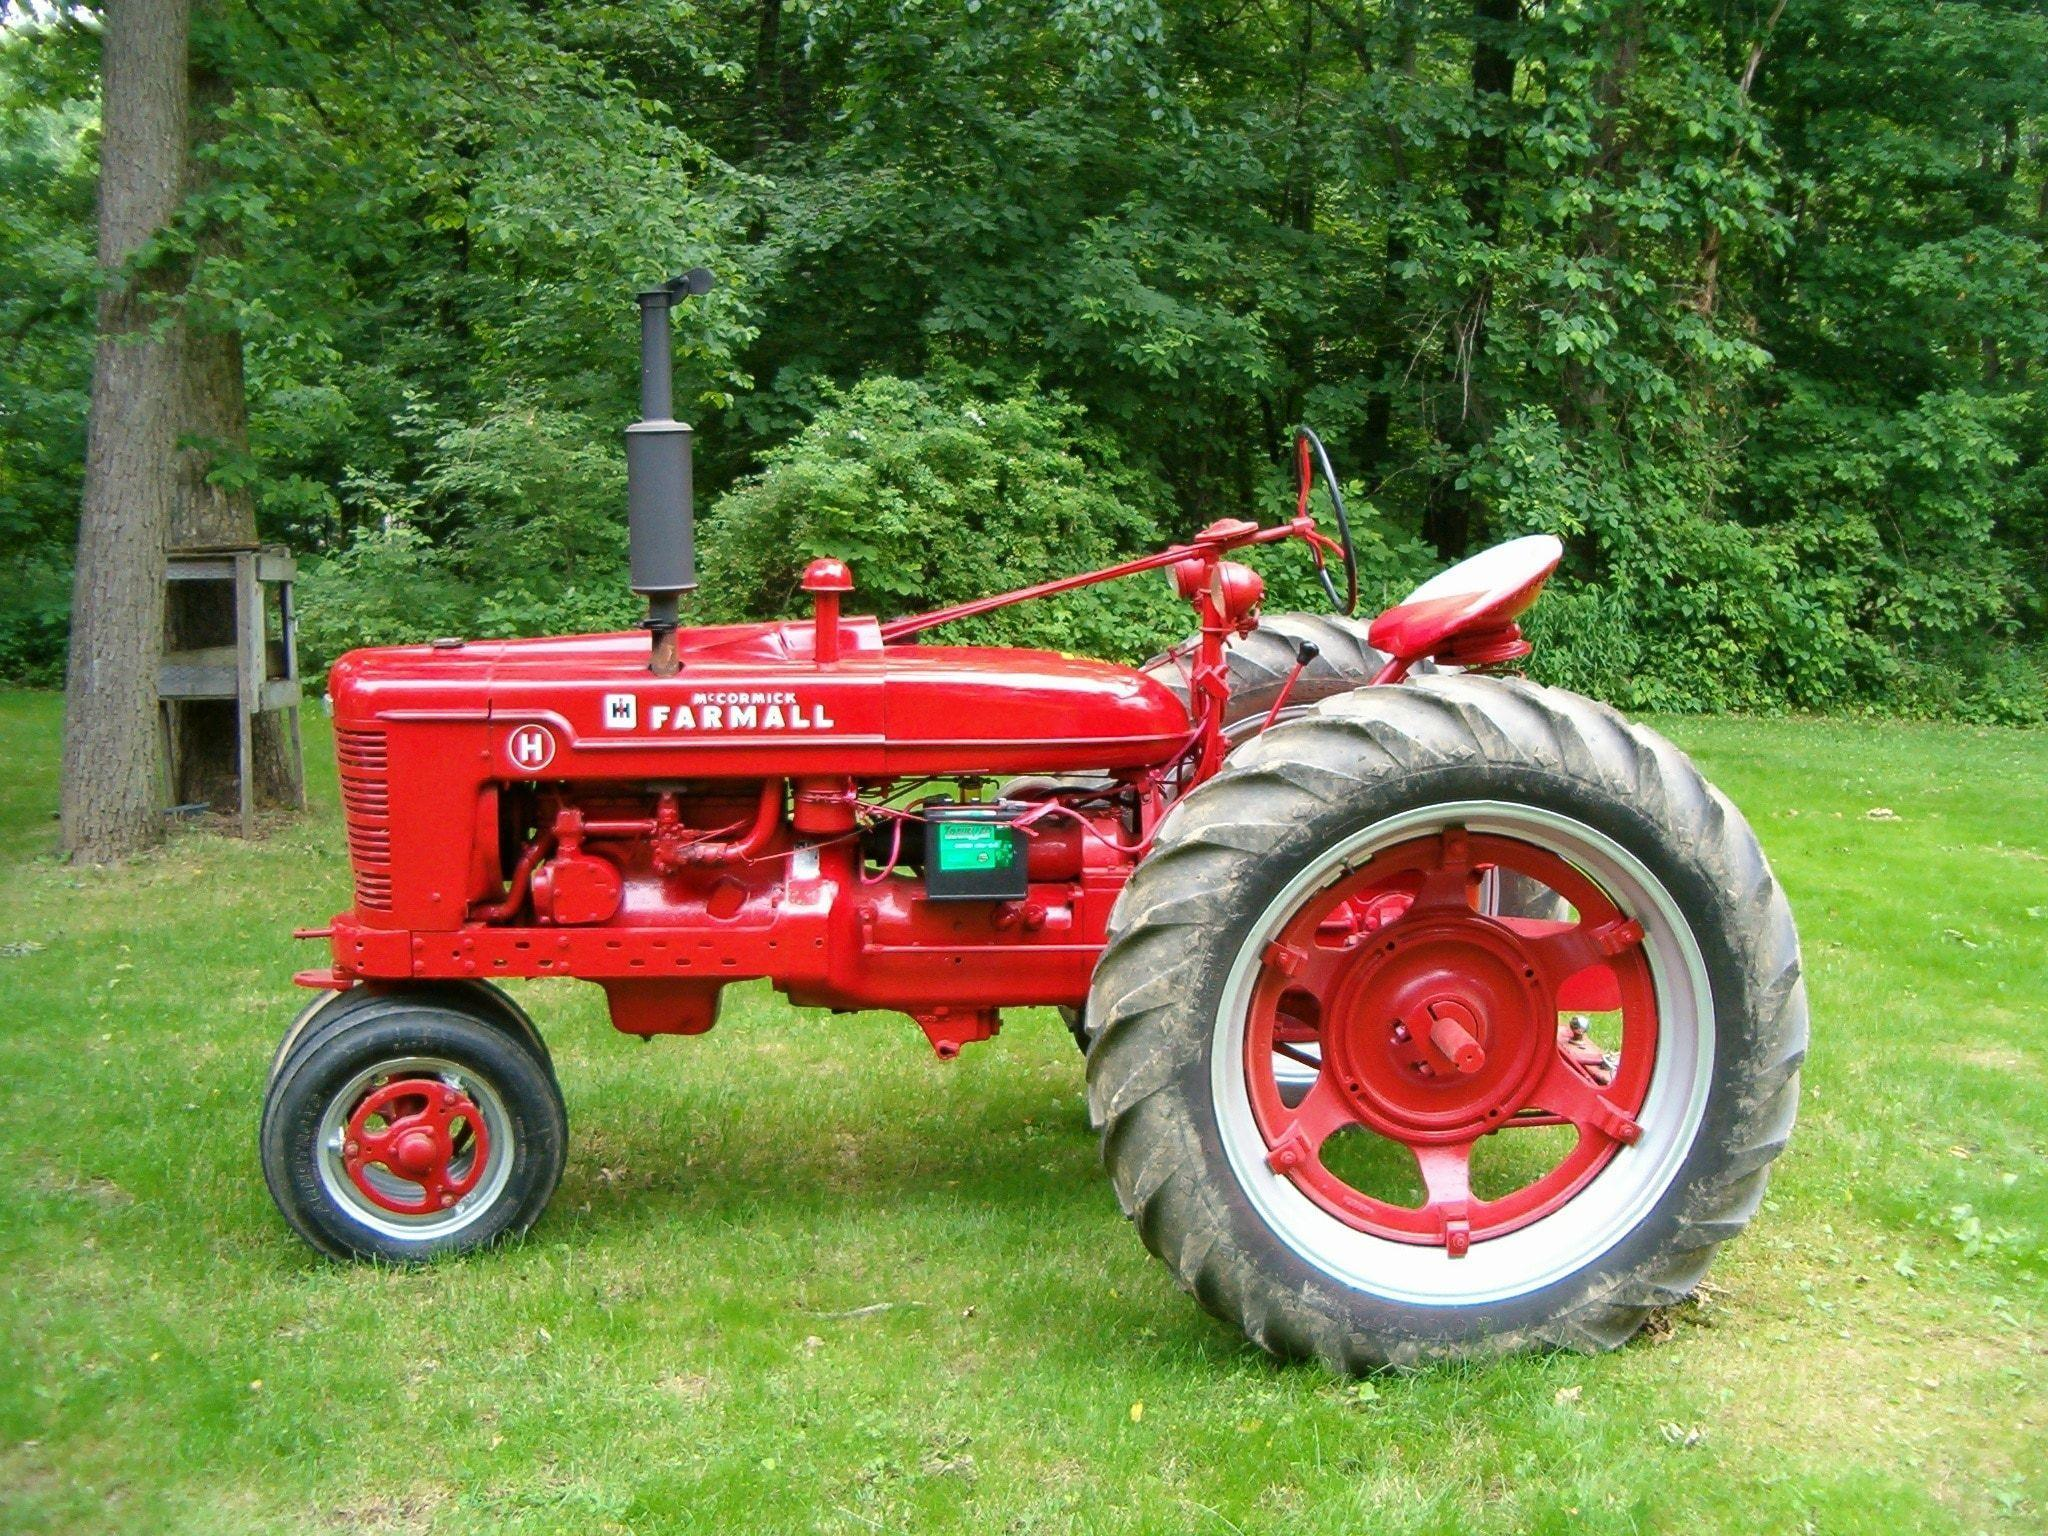 red and black farmall tractor free image | Peakpx